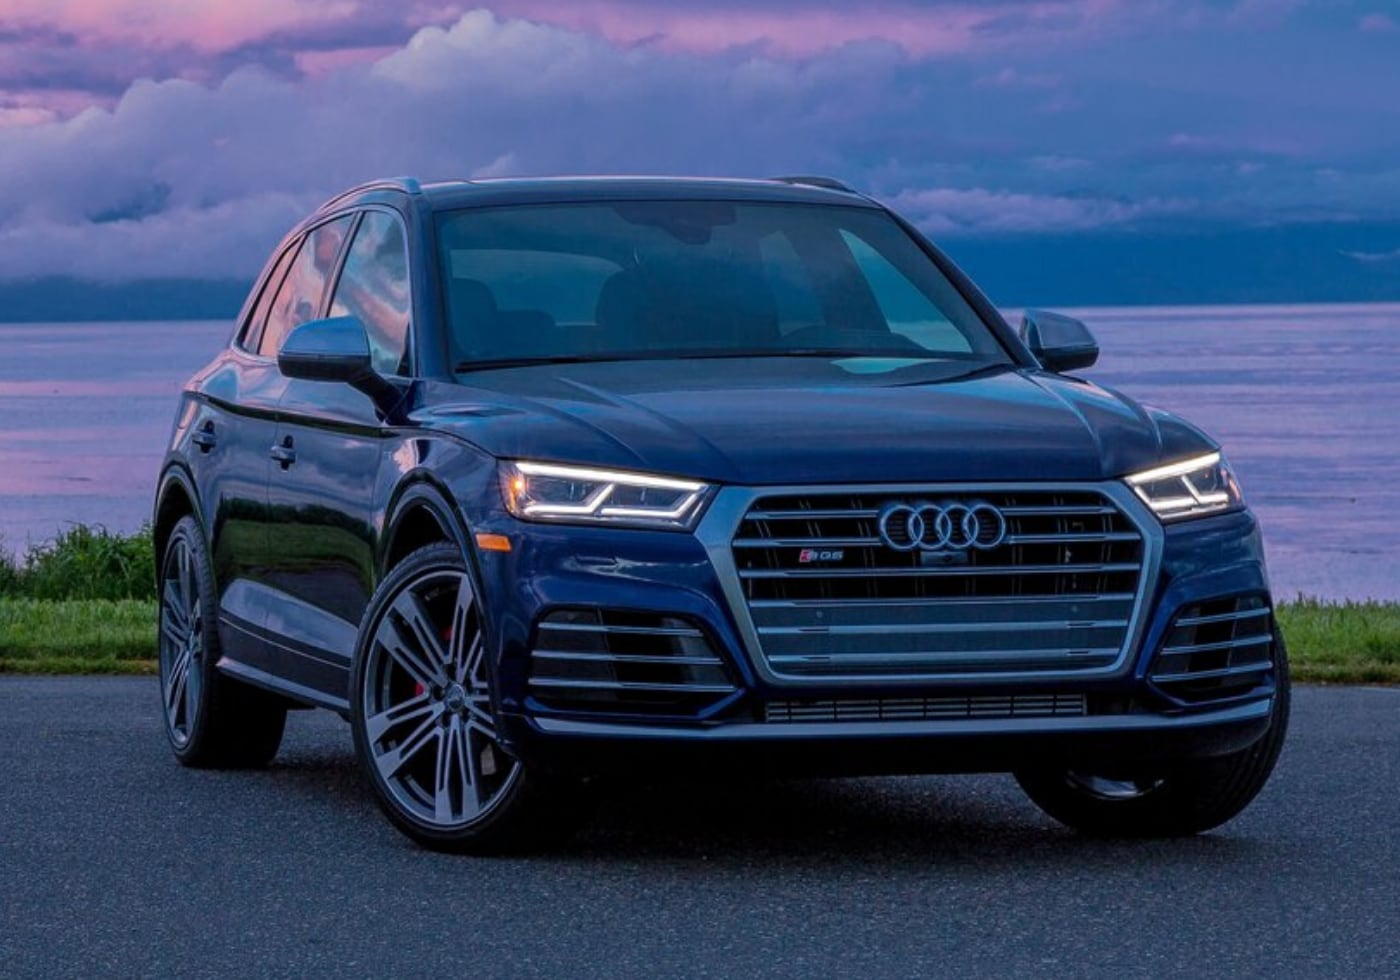 Used 2018 Audi Q5 parked by a lake at sunset with pink and orange colors in the sky reflecting off the water